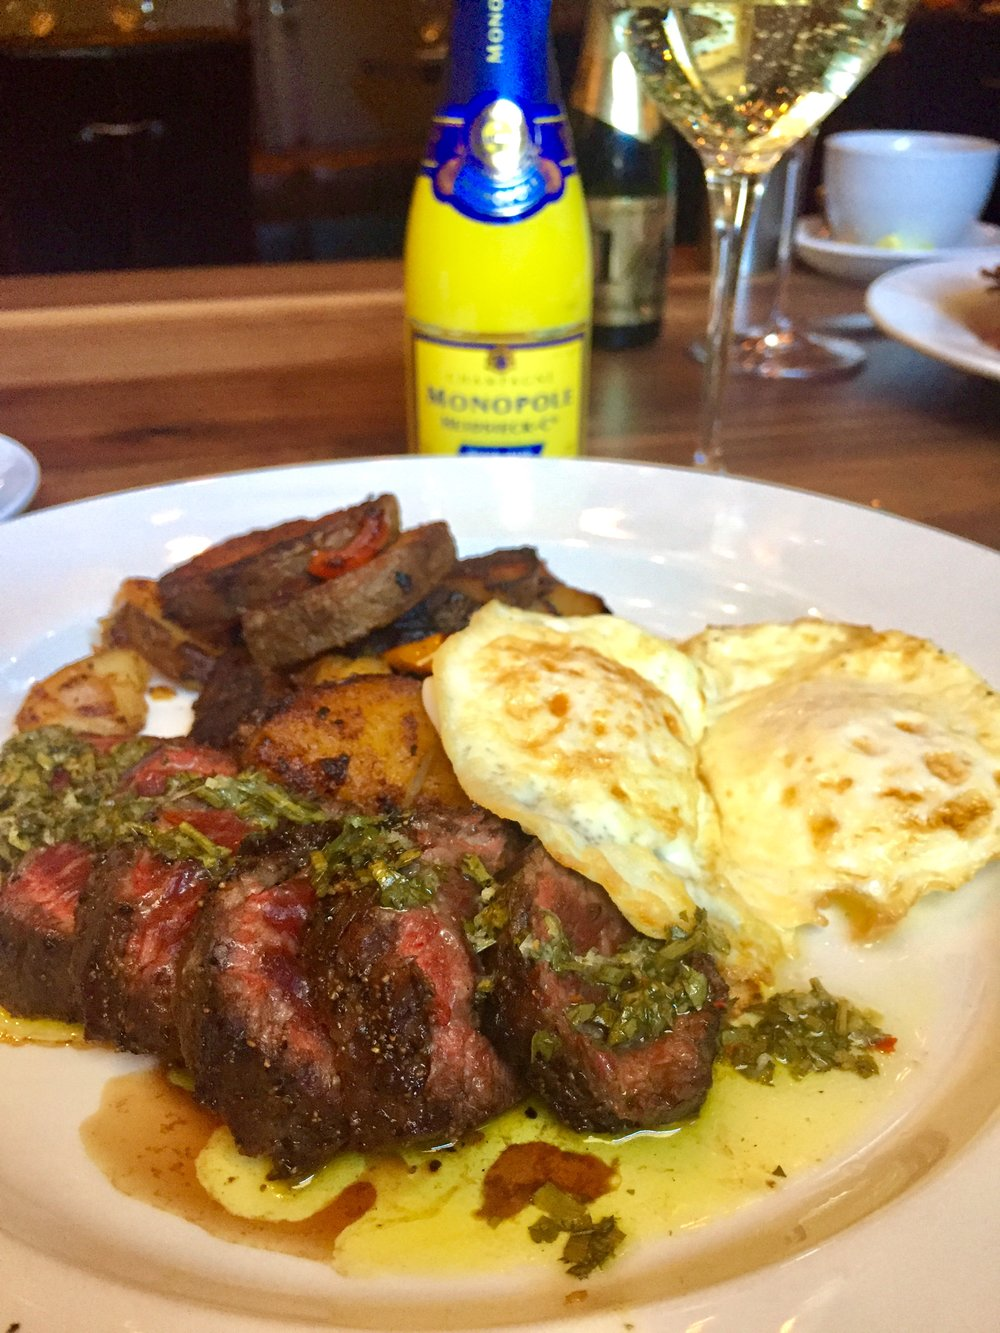 Hangar Steak and Eggs